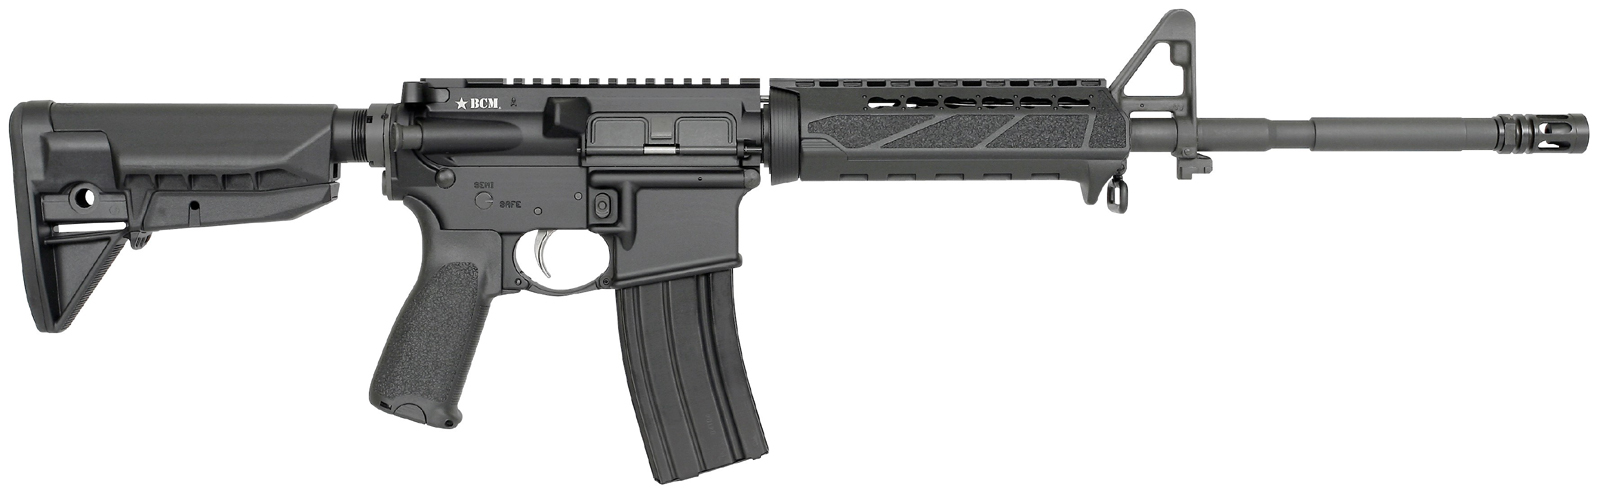 Bravo Company M4 Carbine Modified 0 5.56 16-inch FT 30rd